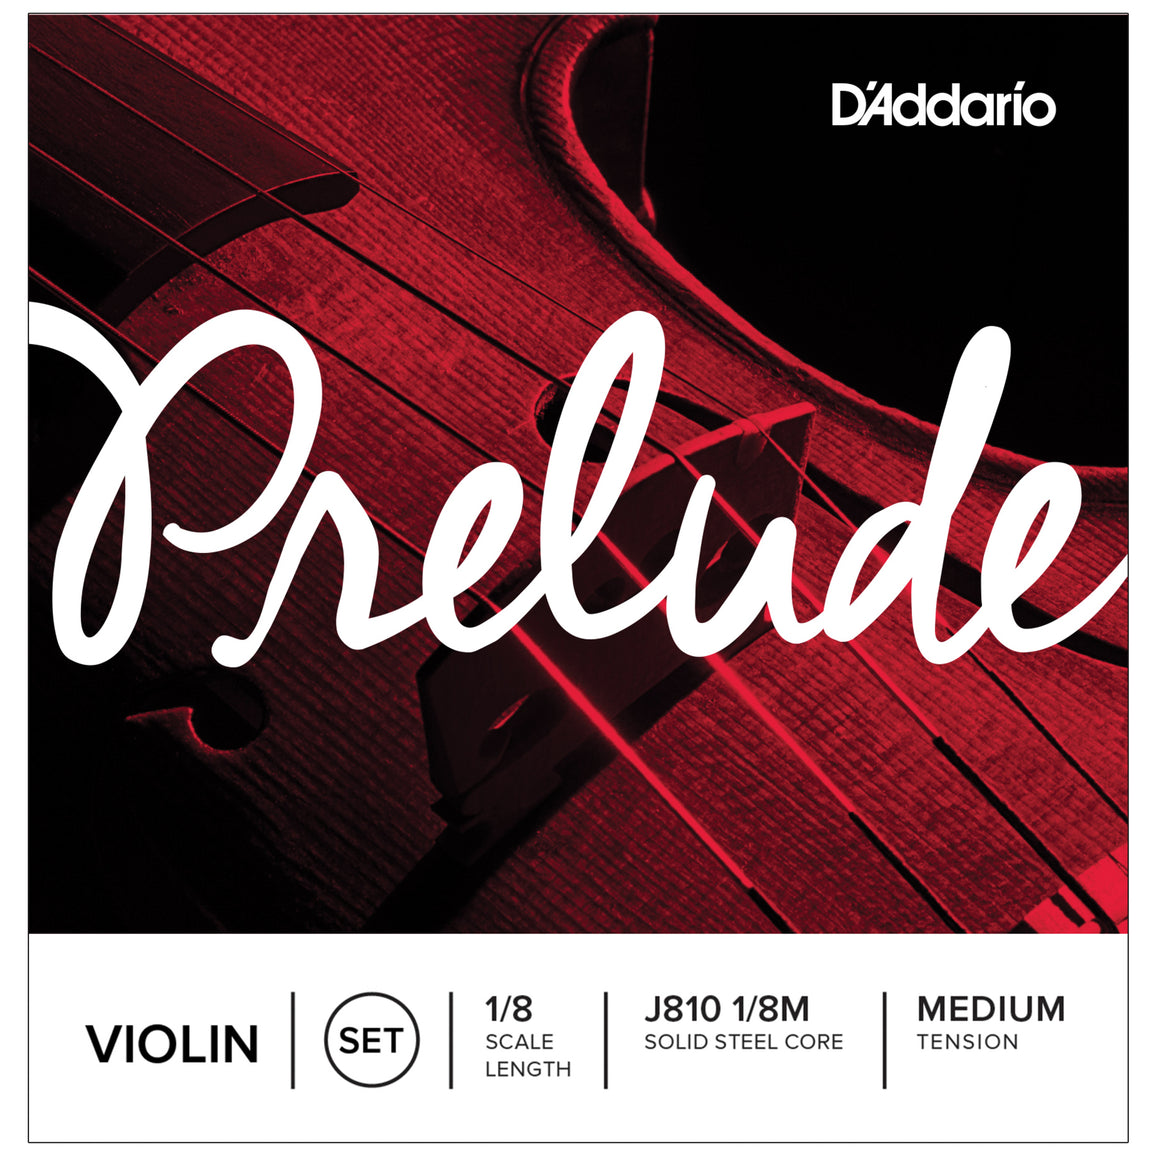 D'Addario Prelude 1/8 Violin Medium Strings Set J810 1/8M